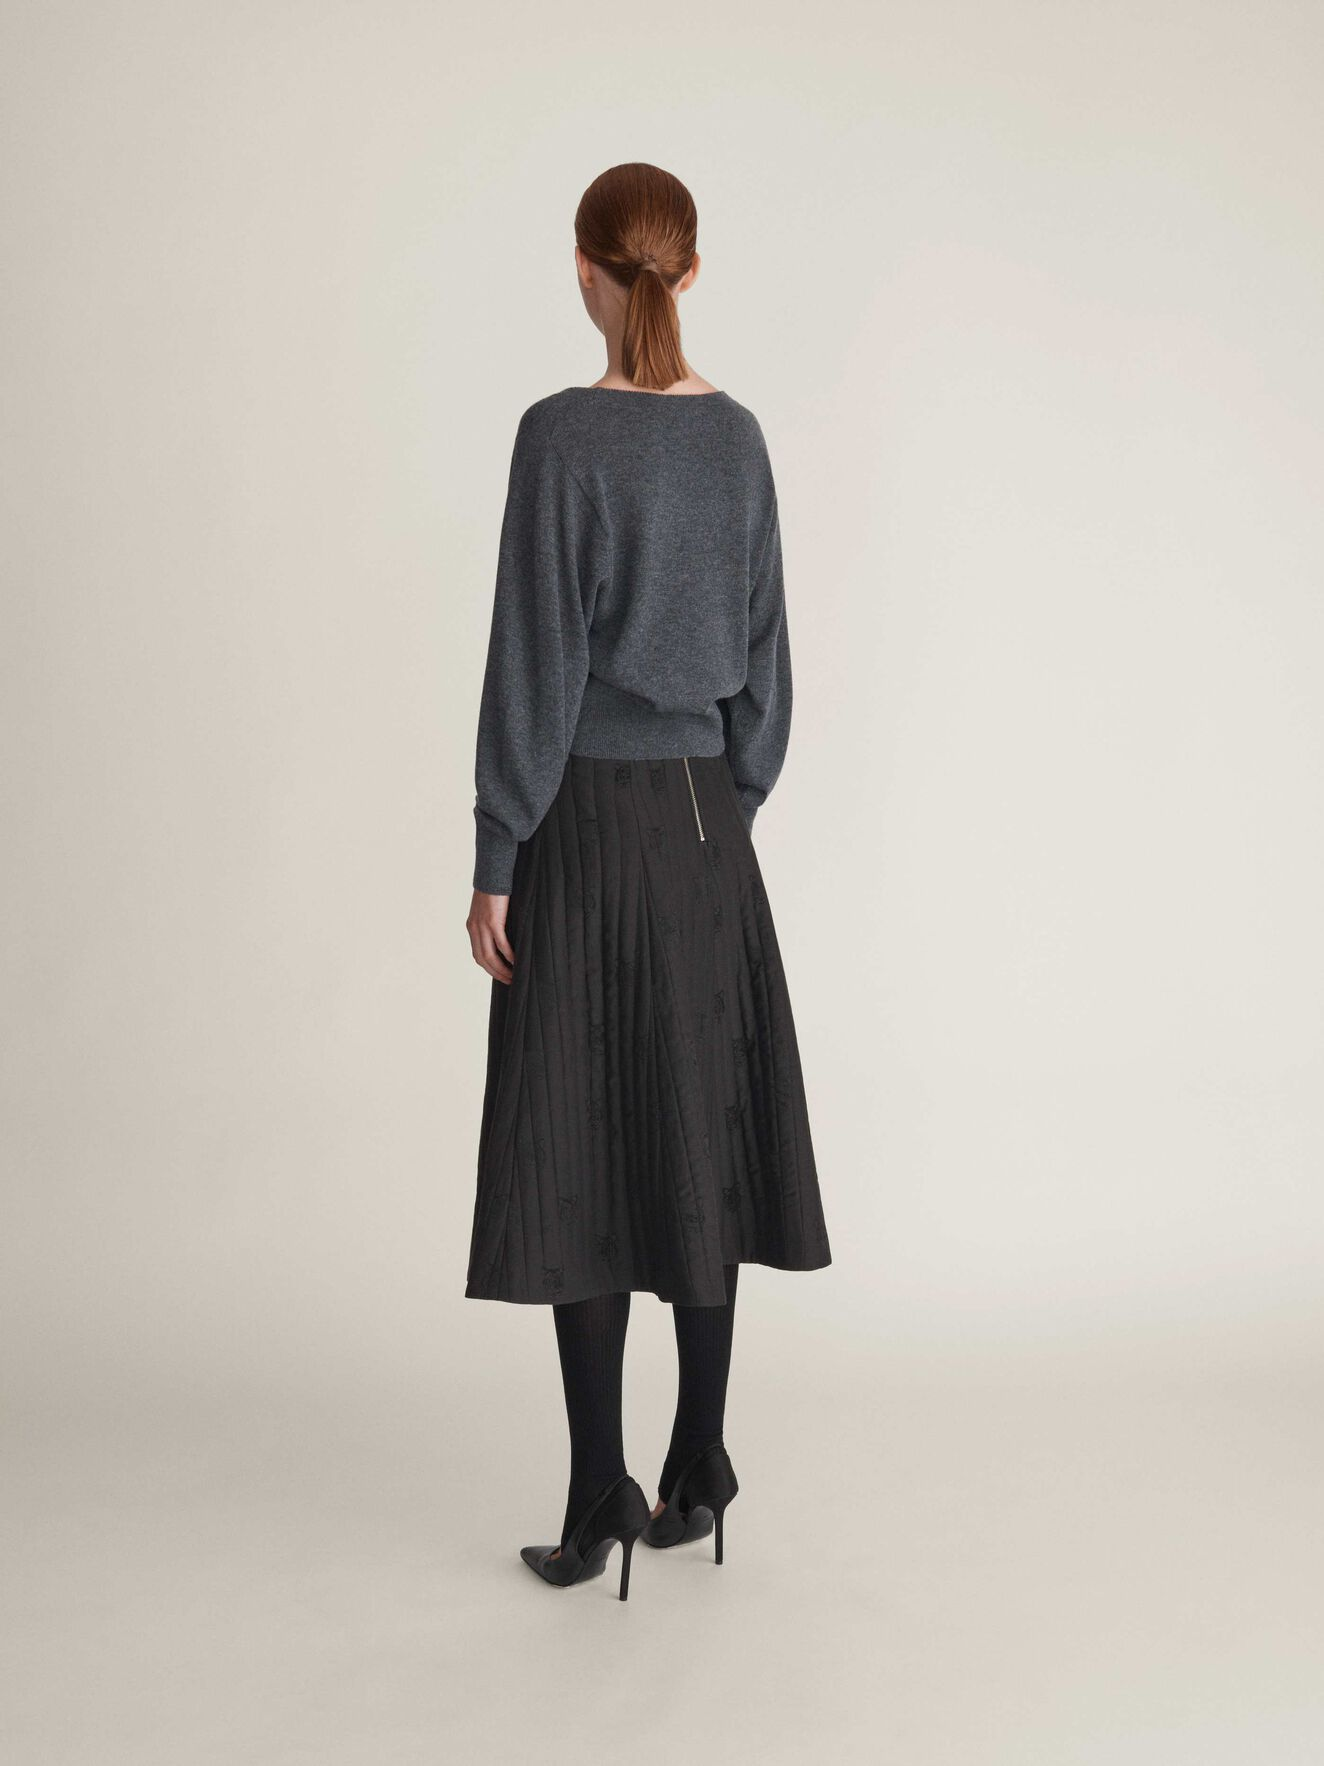 Cylla Pullover in Iron Grey from Tiger of Sweden